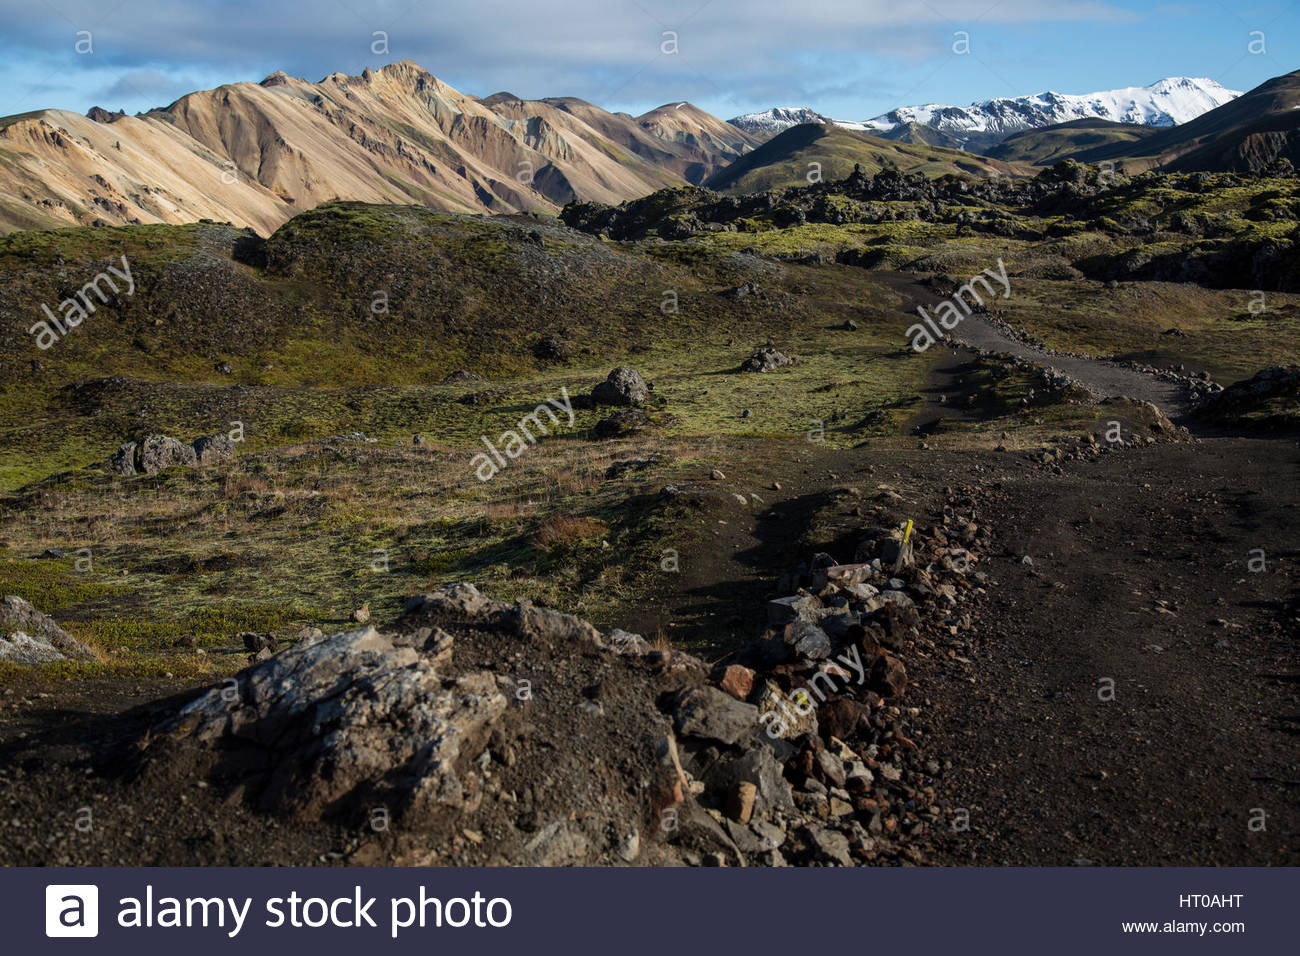 Iceland Highlands Snow Mountains and Moss Stock Photo